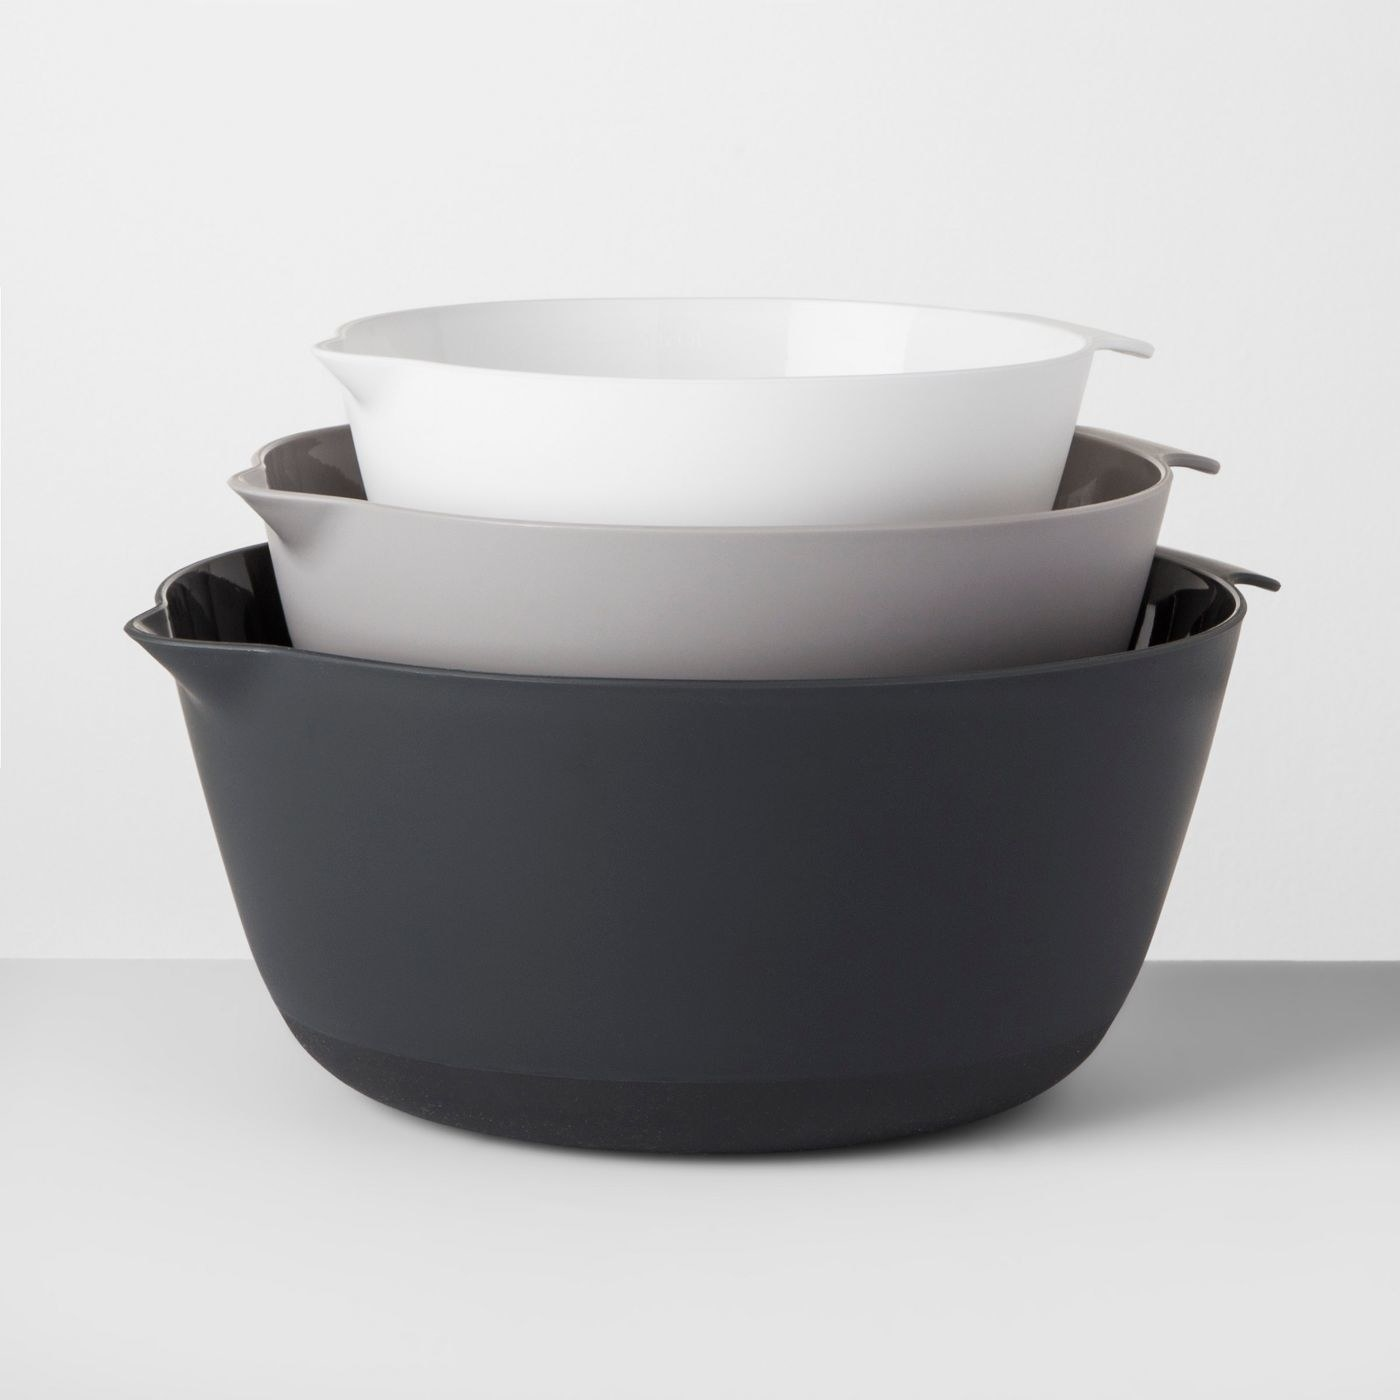 a set of three mixing bowls that fit inside one another and are white, grey, and black